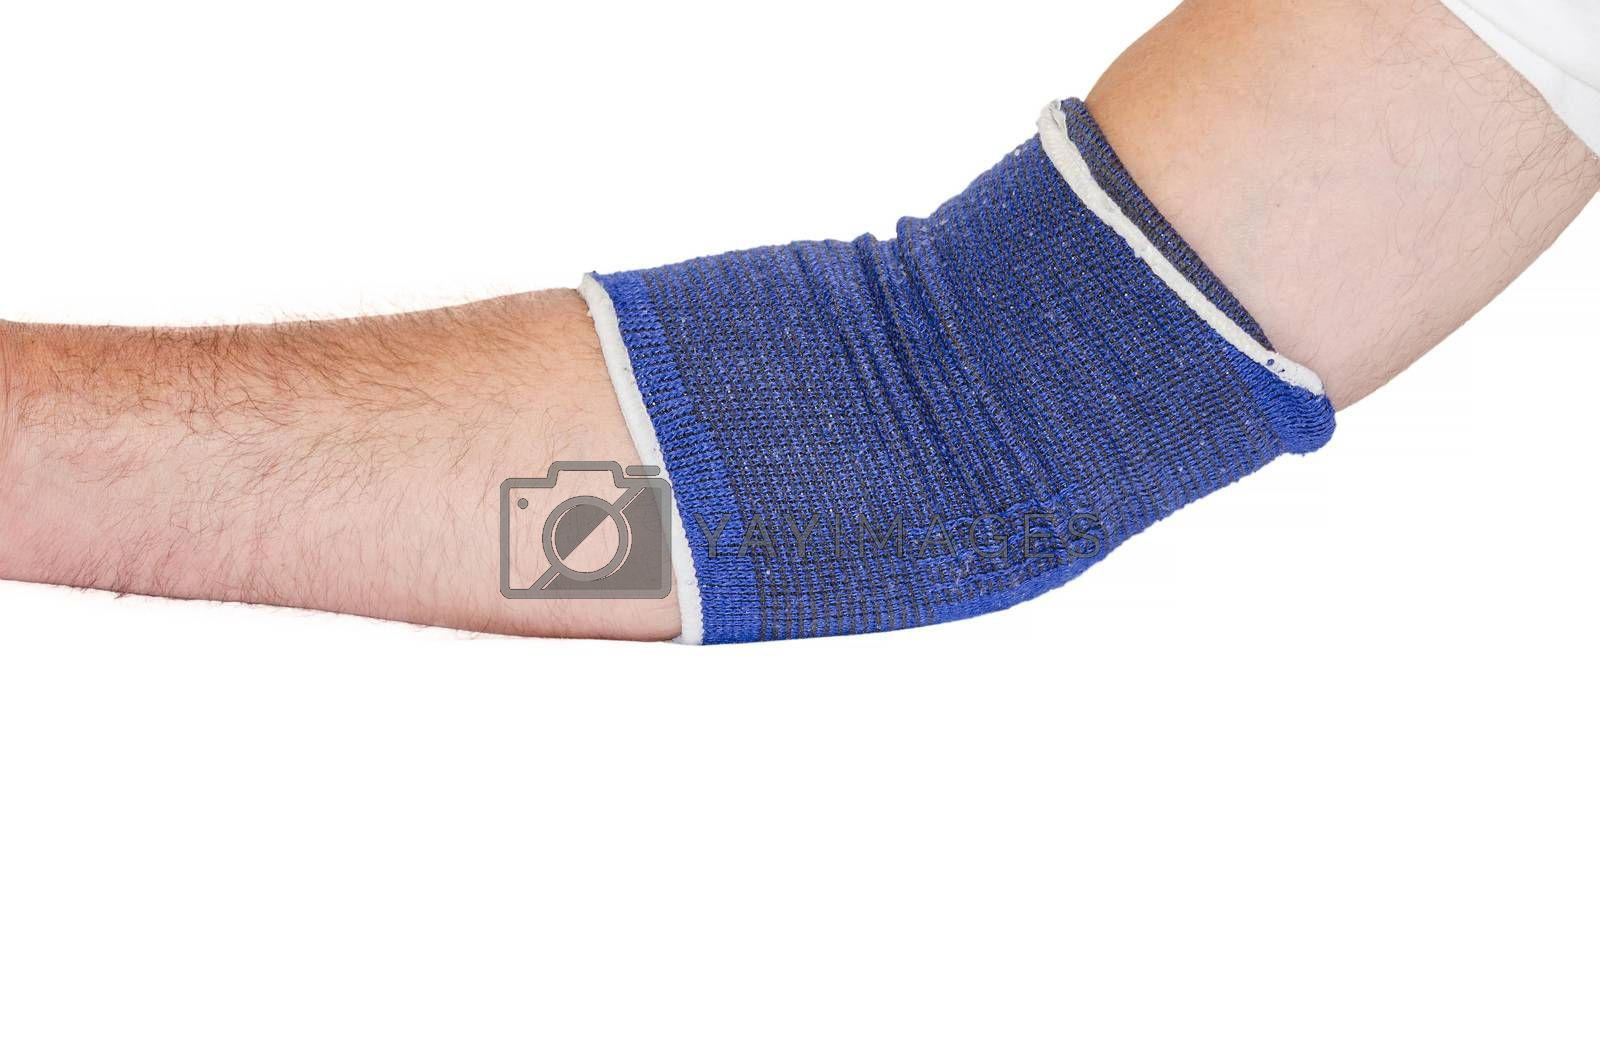 Injured male hand wrapped with bandage, isolated against white background.